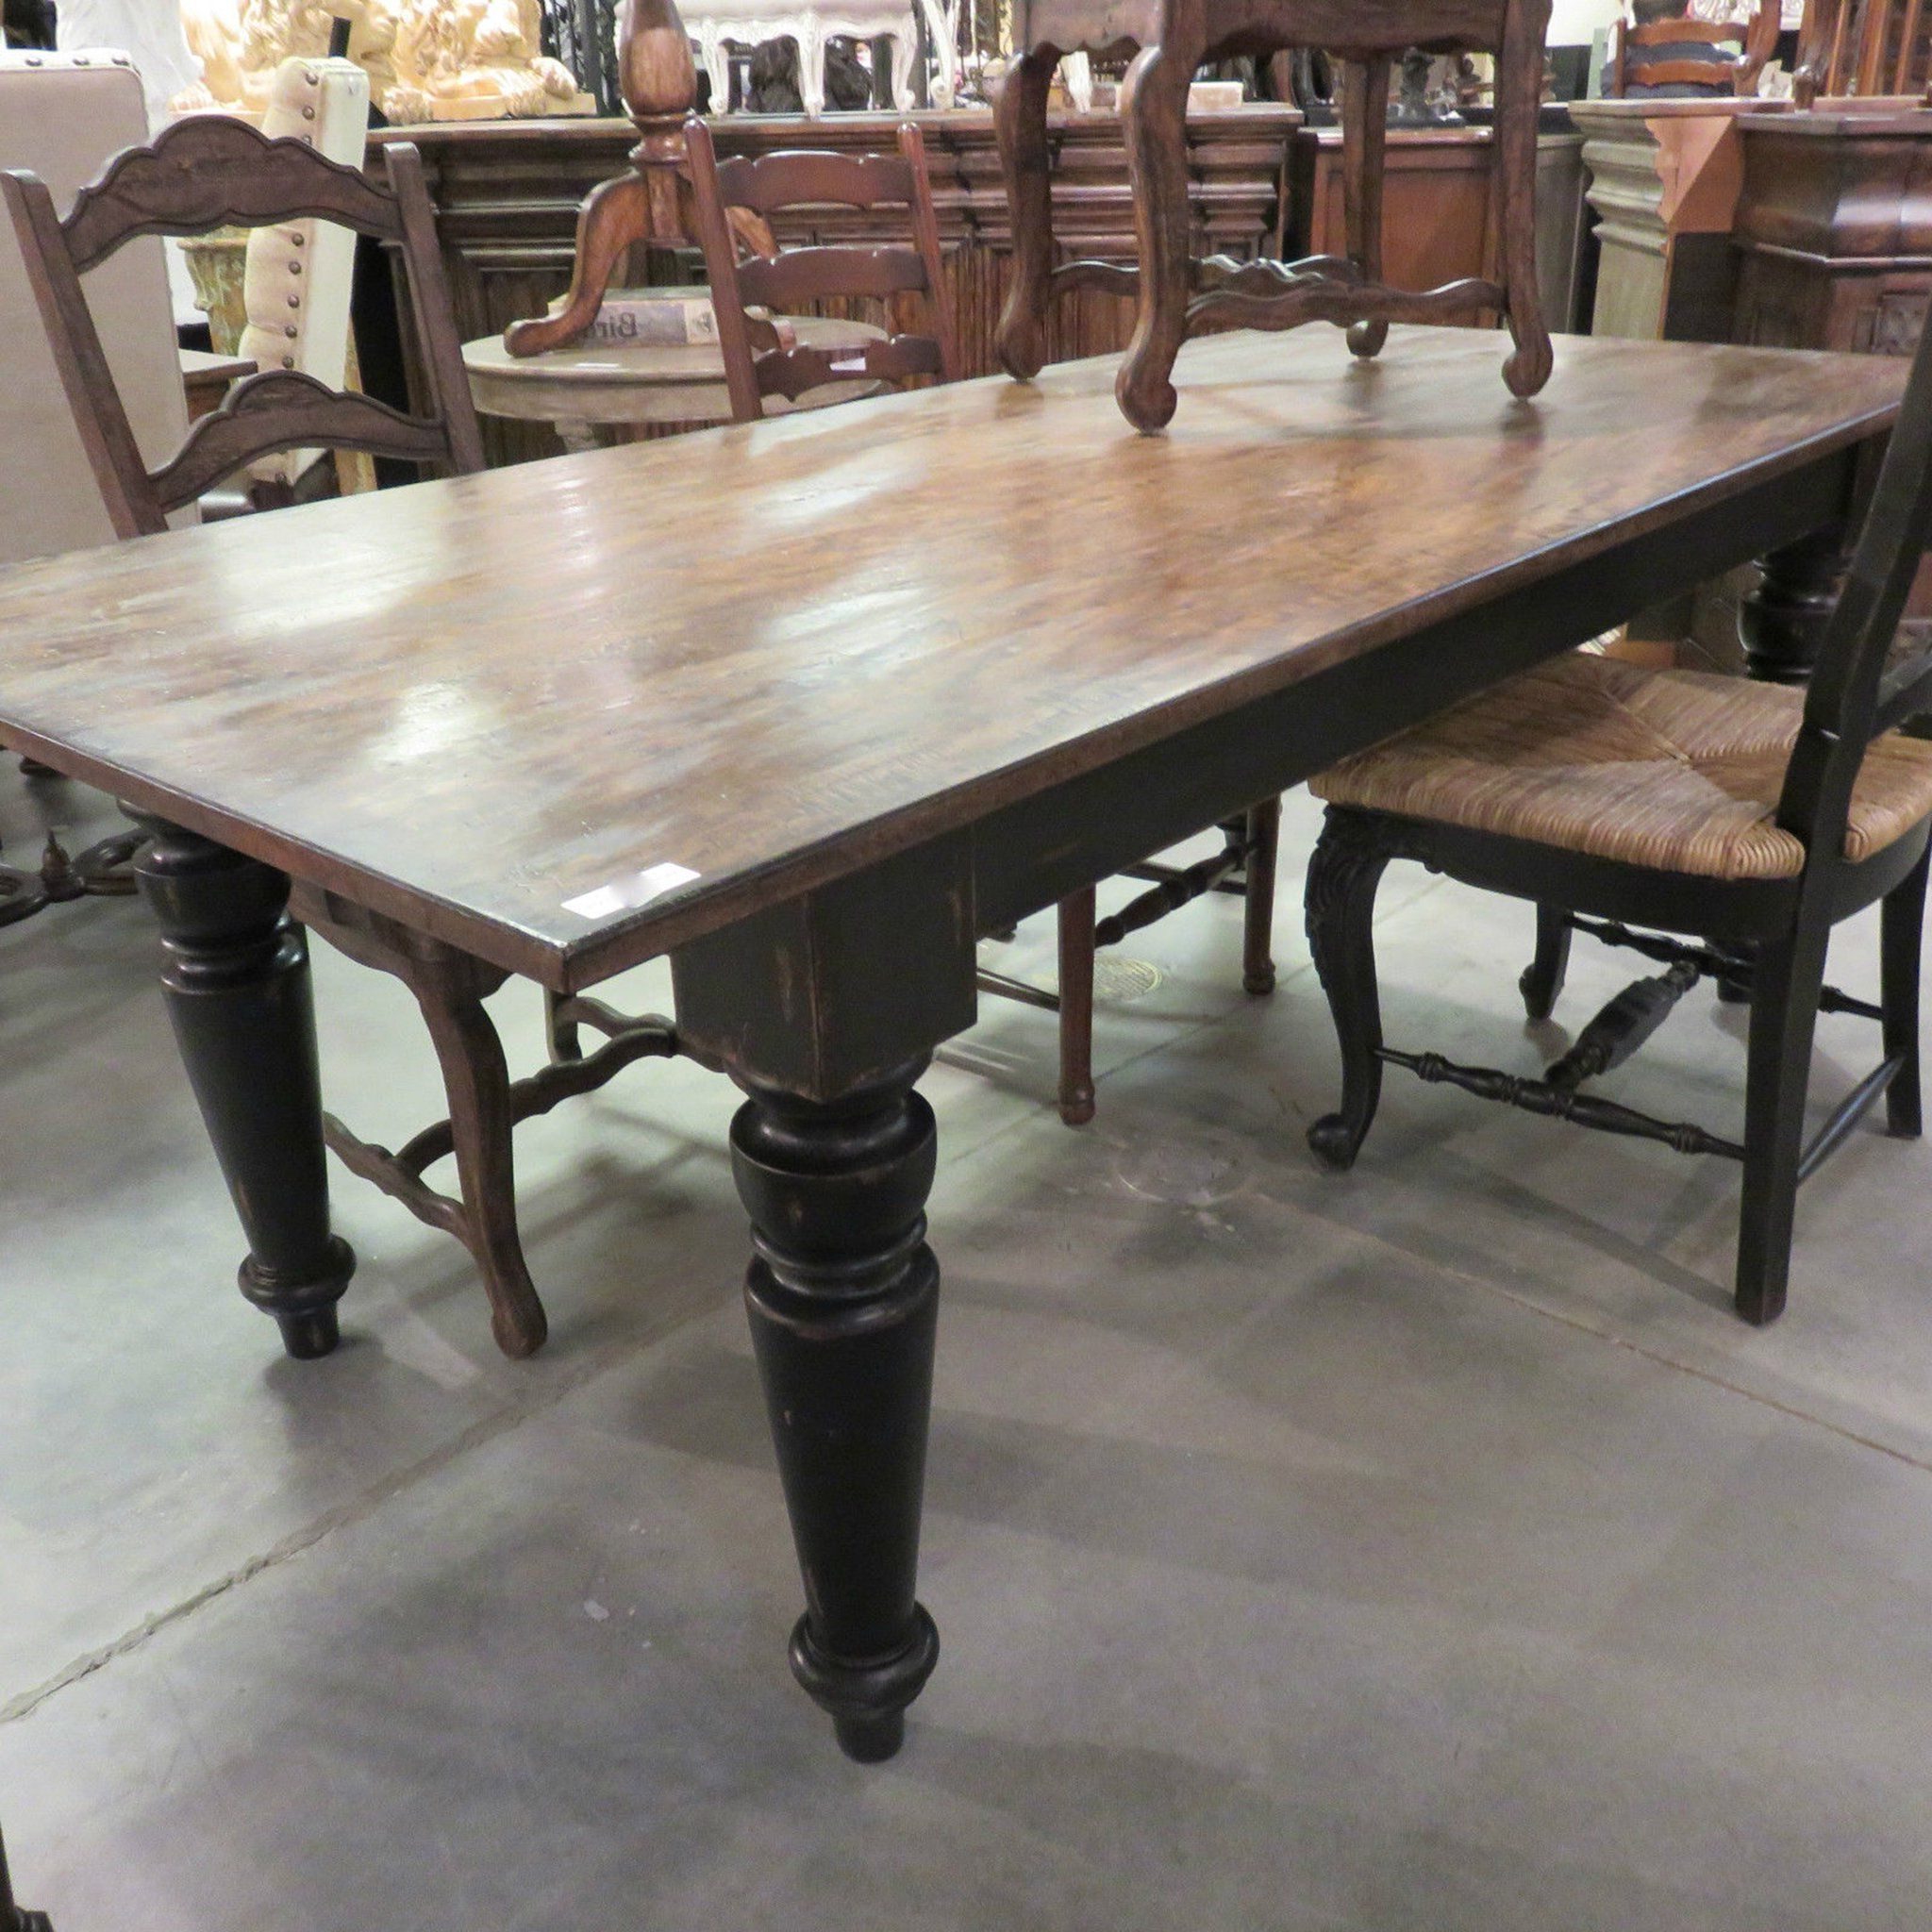 """Preferred Rustic Farmhouse Dining Table 72"""" Black Distressed Reclaimed With Distressed Walnut And Black Finish Wood Modern Country Dining Tables (View 5 of 25)"""